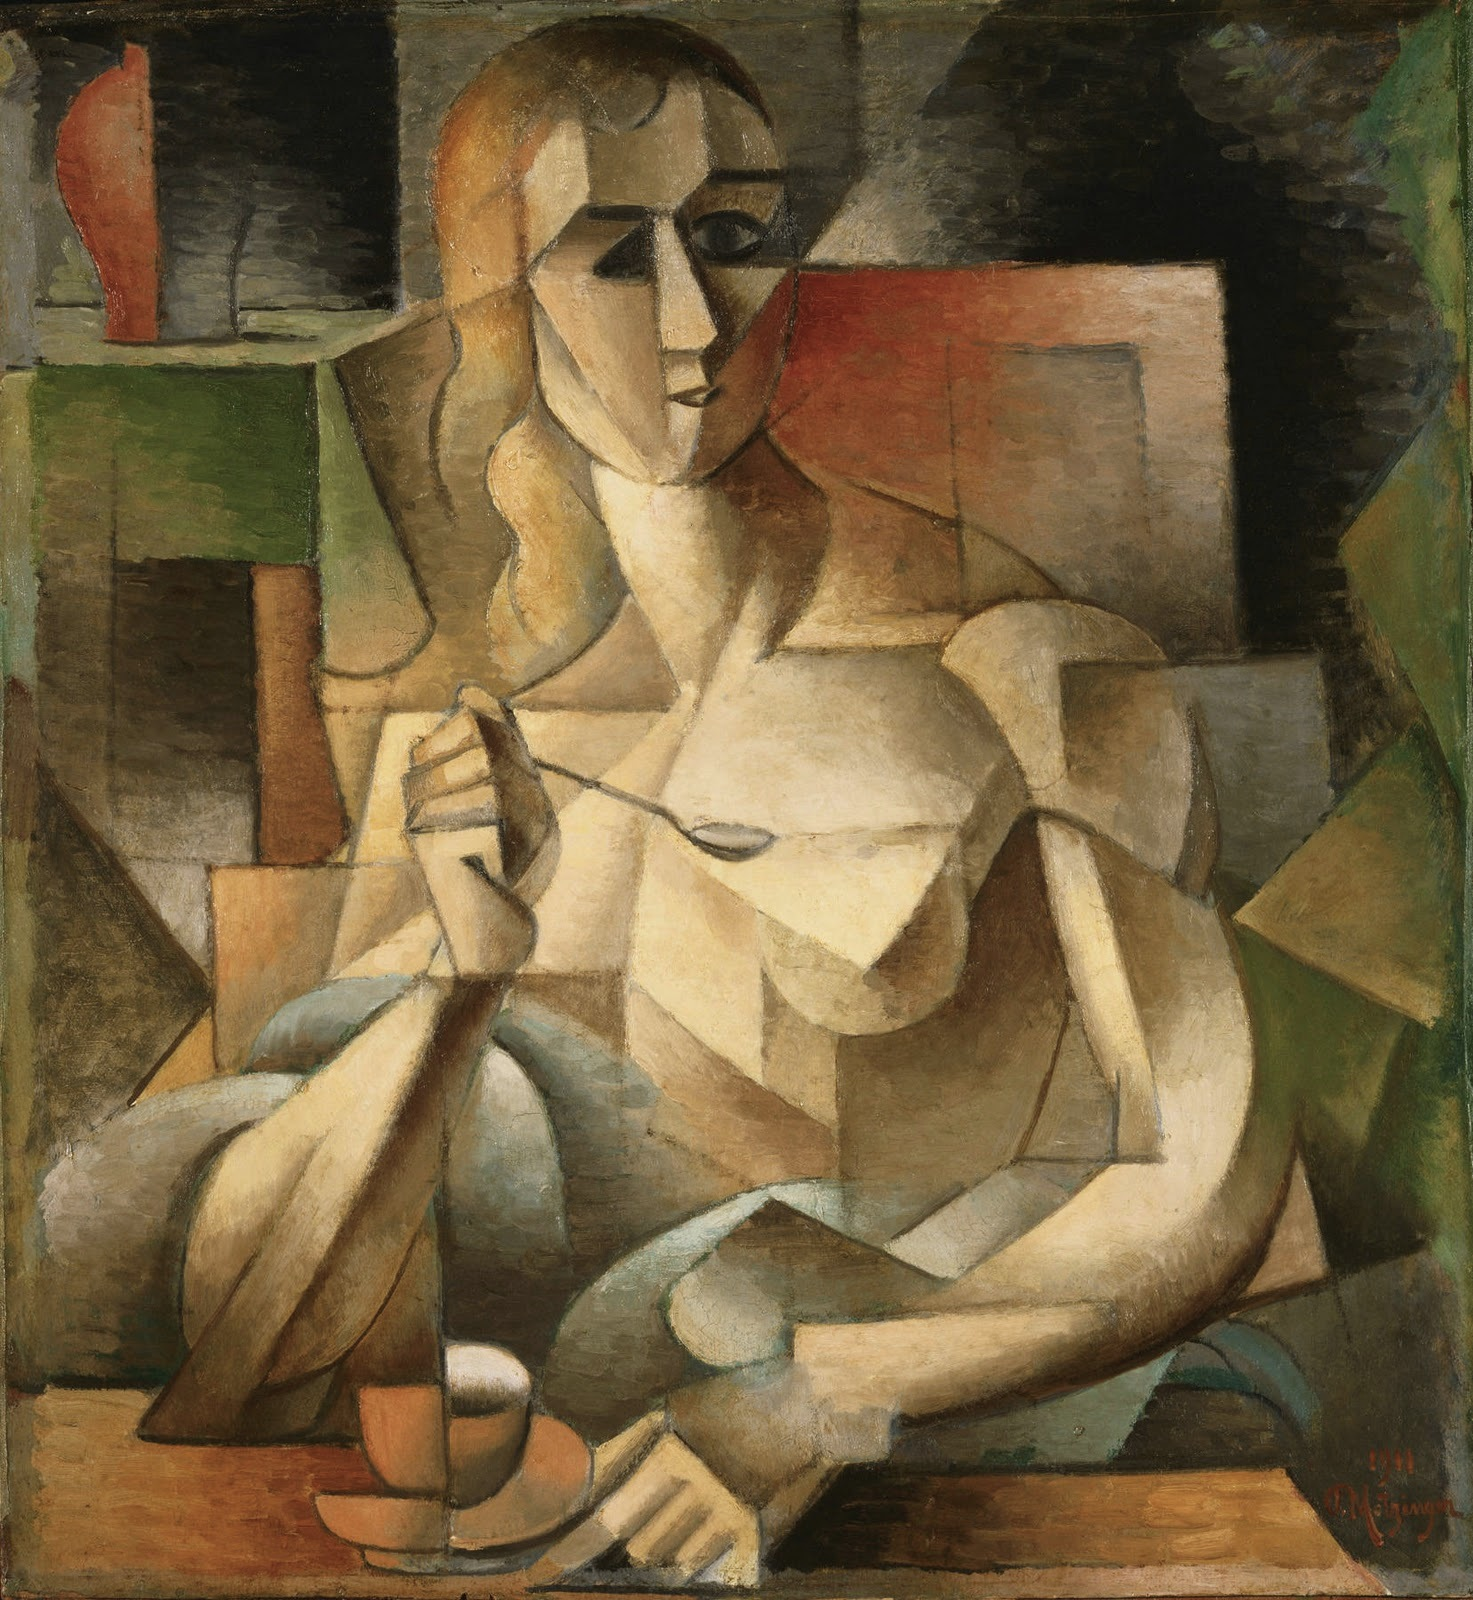 Cubist cross with nude